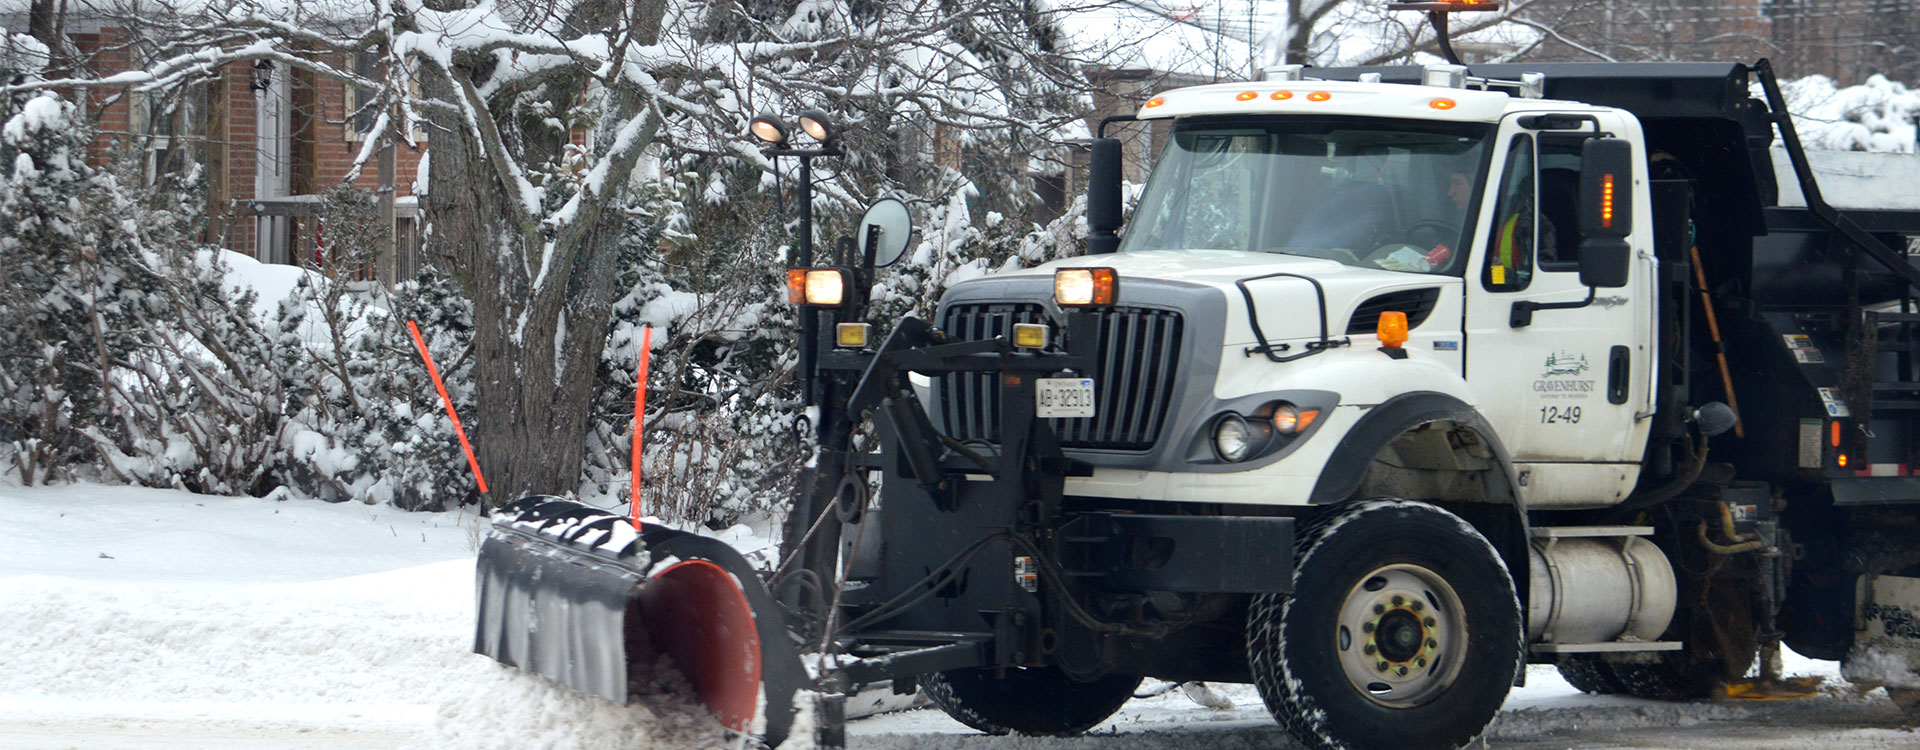 Winter maintenance, operations, snow plow, winter roads